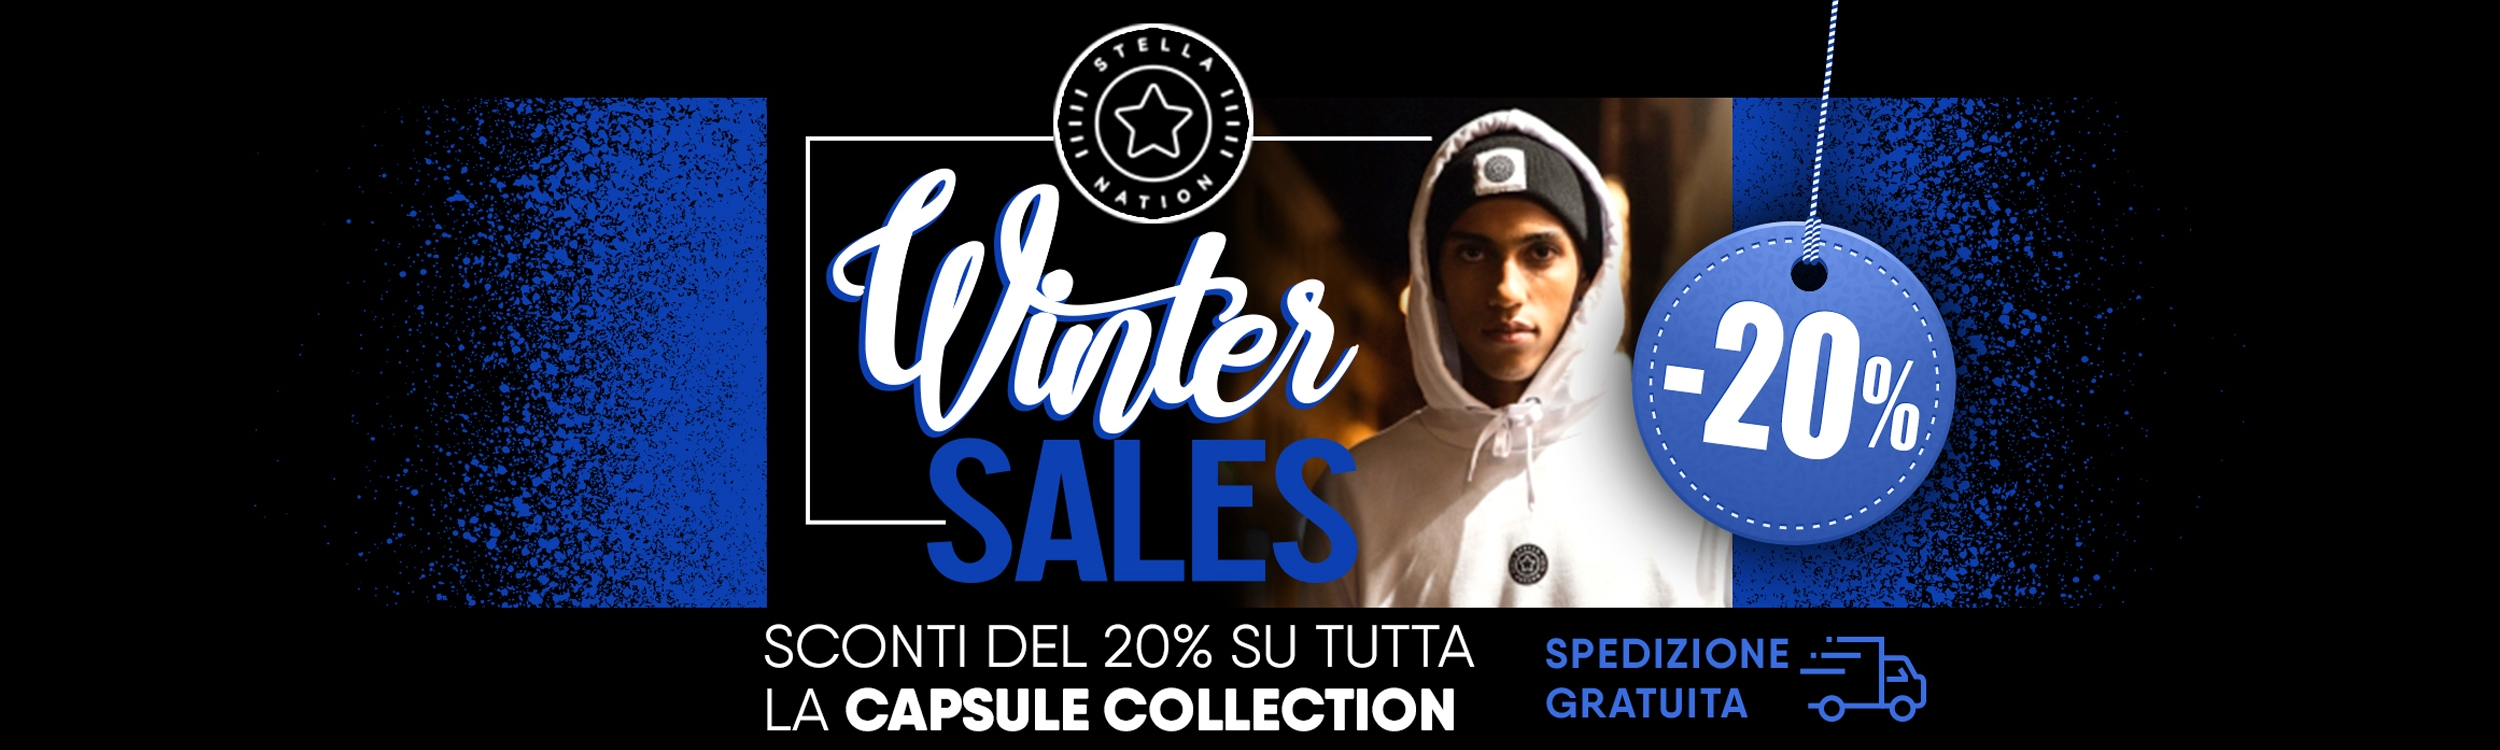 Banner_CapsuleCollection_Saldi2500